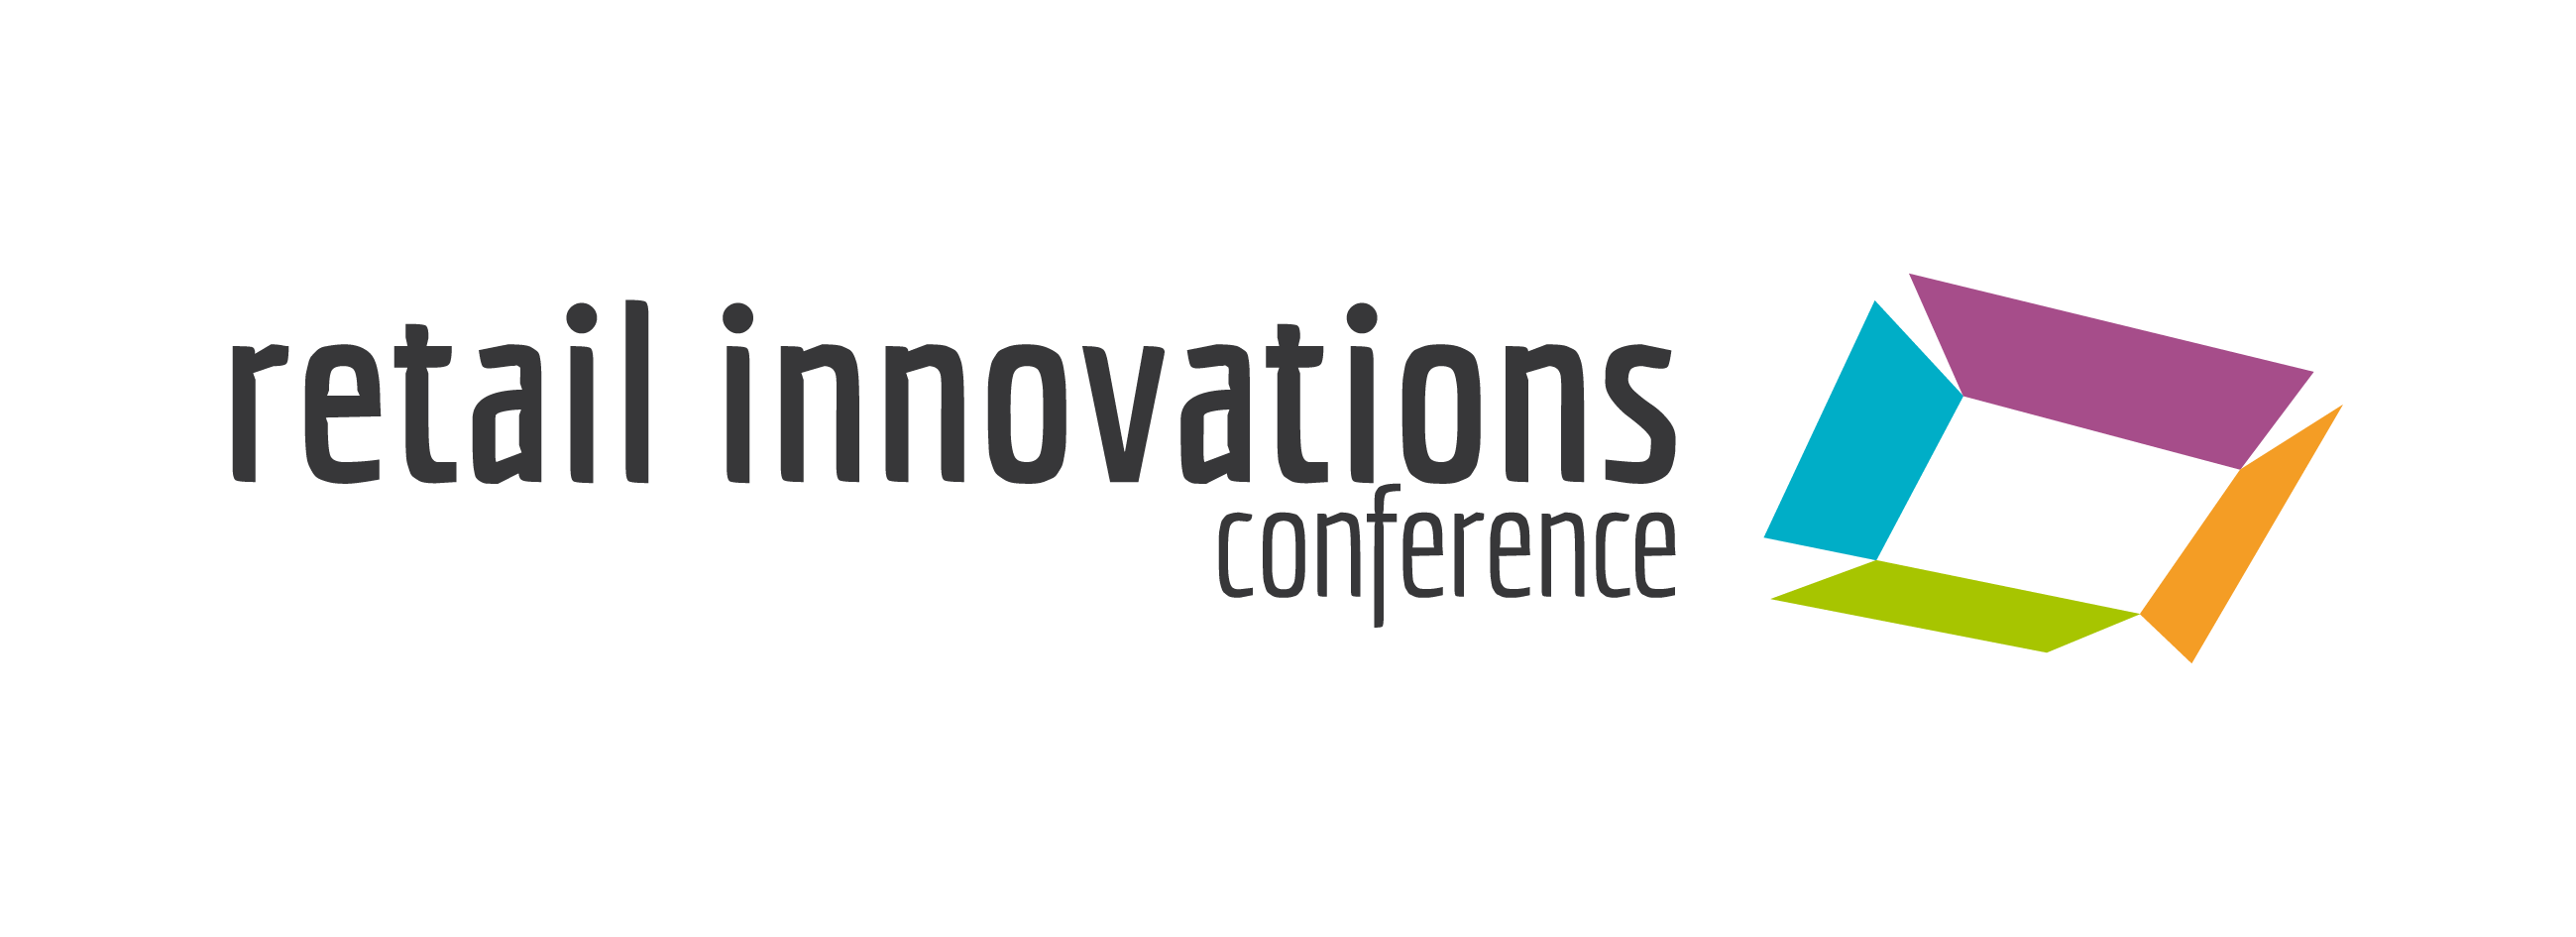 Retail-Innovations conference 2017